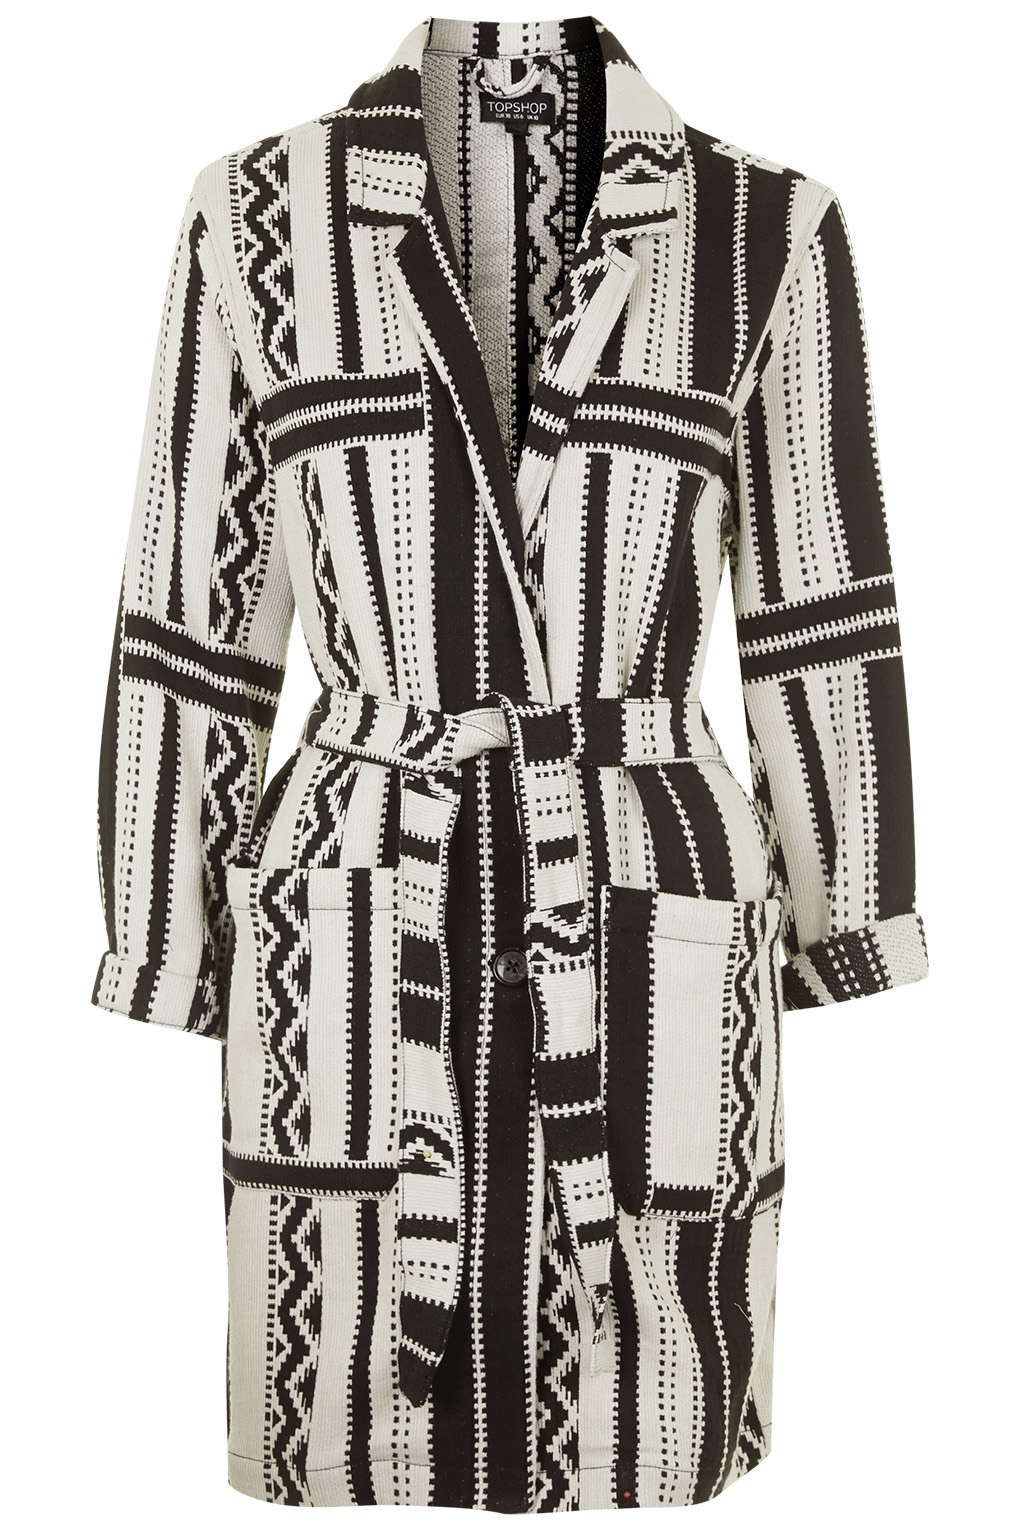 Woven Aztec Duster Jacket   Duster jacket, Dusters and Aztec